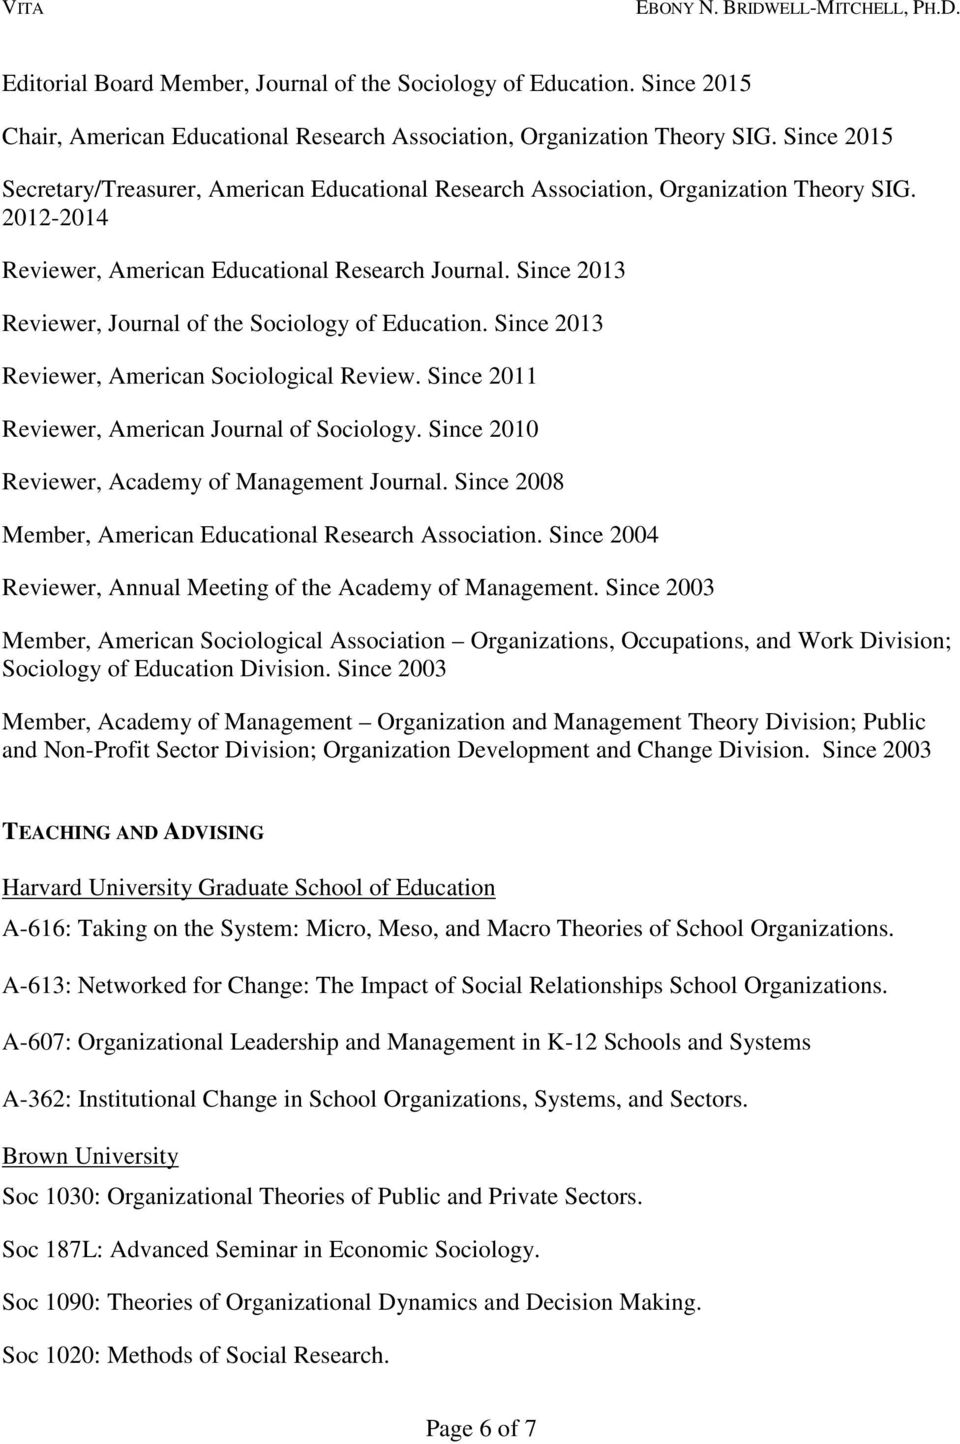 Since 2013 Reviewer, Journal of the Sociology of Education. Since 2013 Reviewer, American Sociological Review. Since 2011 Reviewer, American Journal of Sociology.